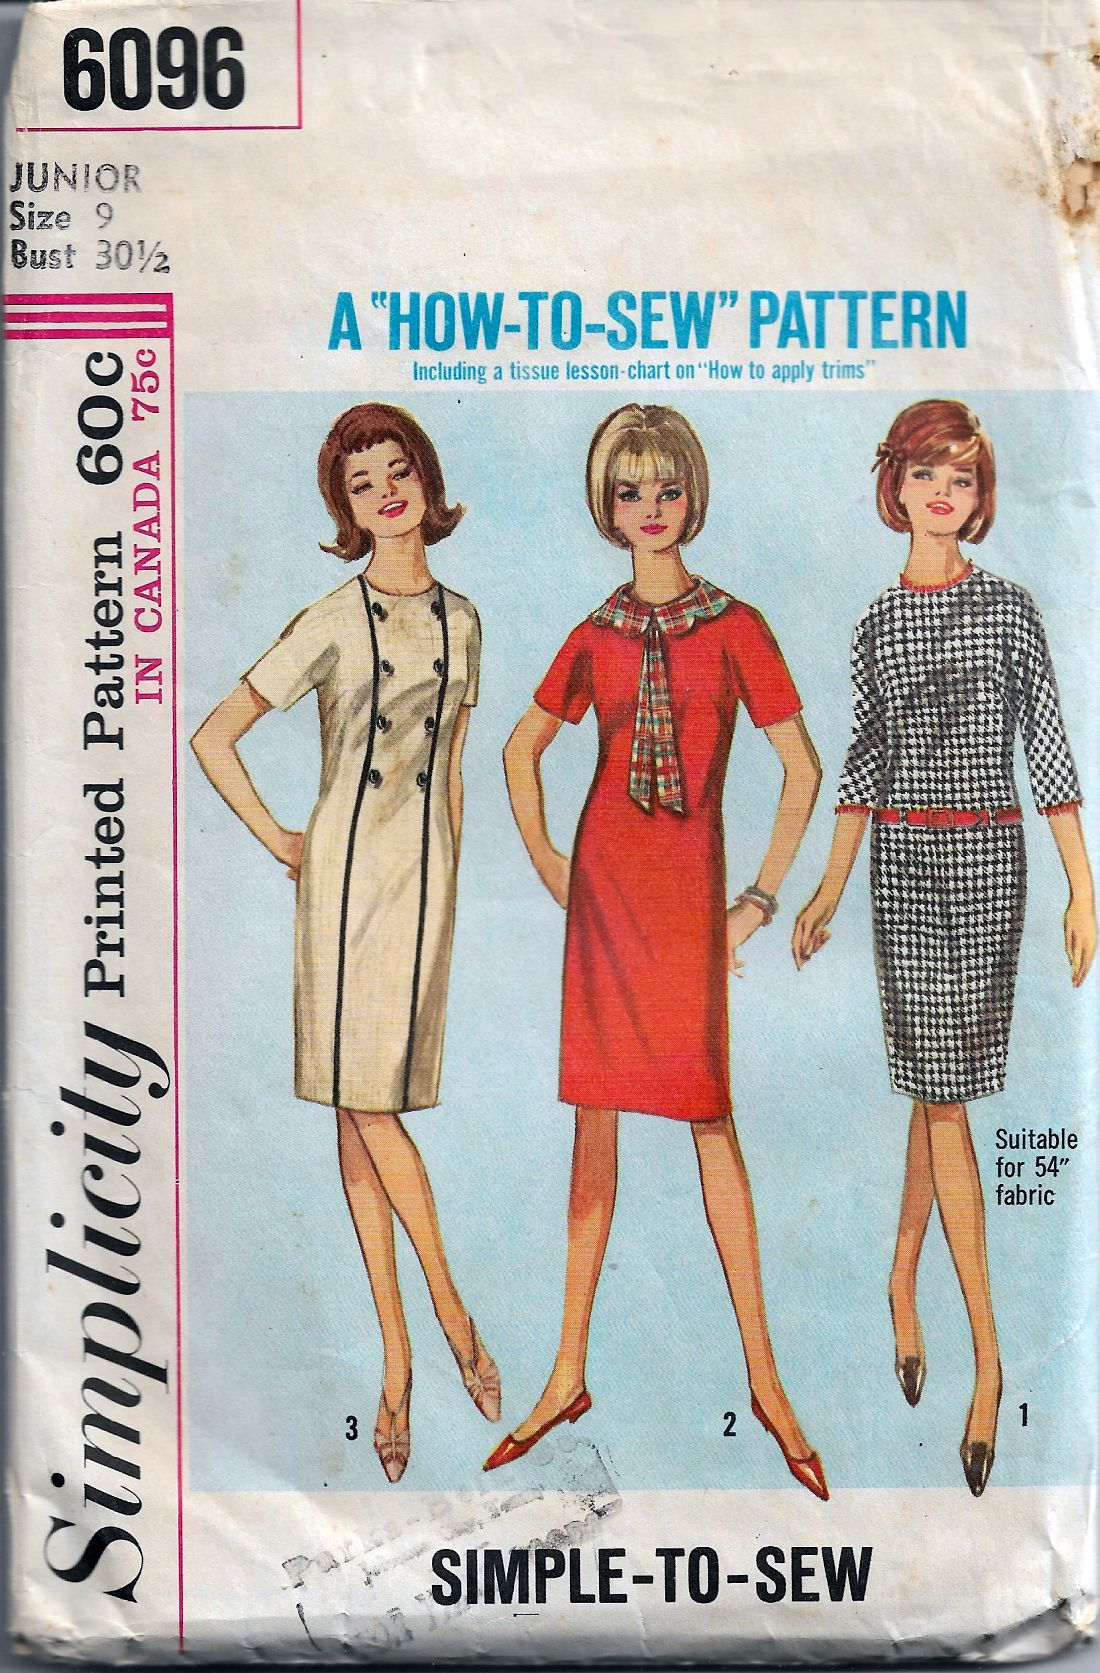 Simplicity 6096 Junior Shift Dress Detachable Vintage Sewing Pattern Mad Men - VintageStitching - Vintage Sewing Patterns